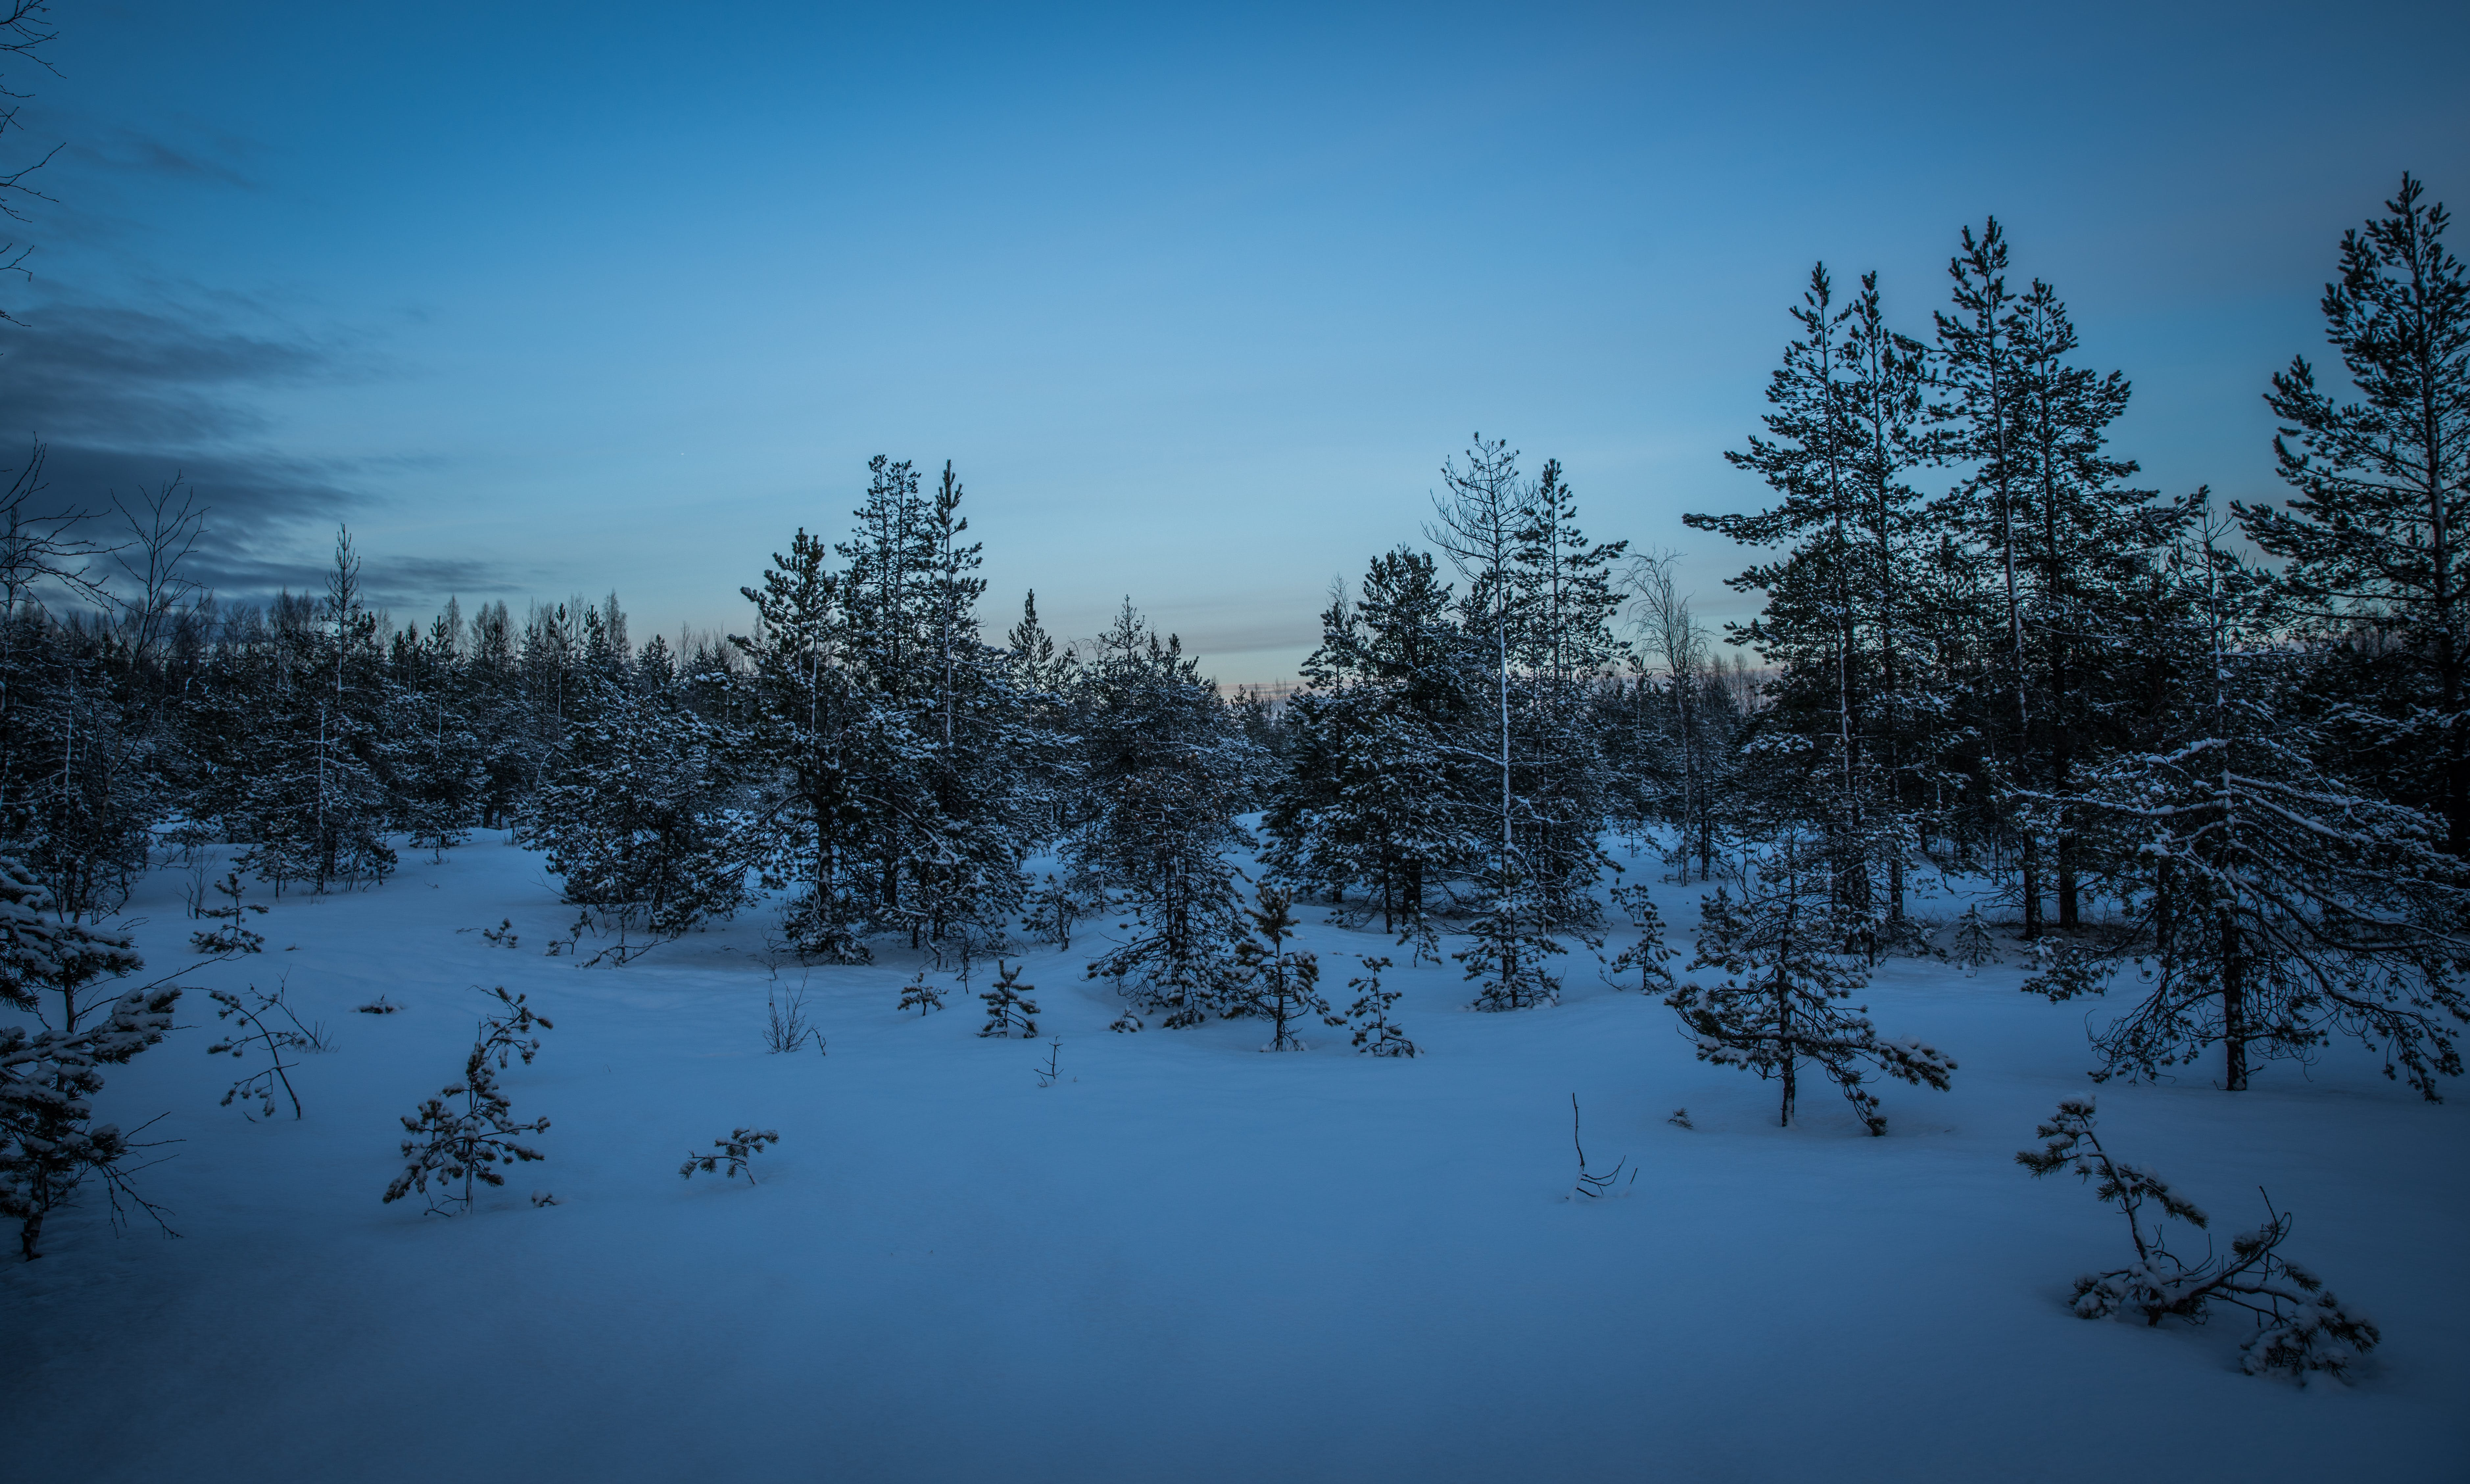 Green Pine Trees With Snow Photography